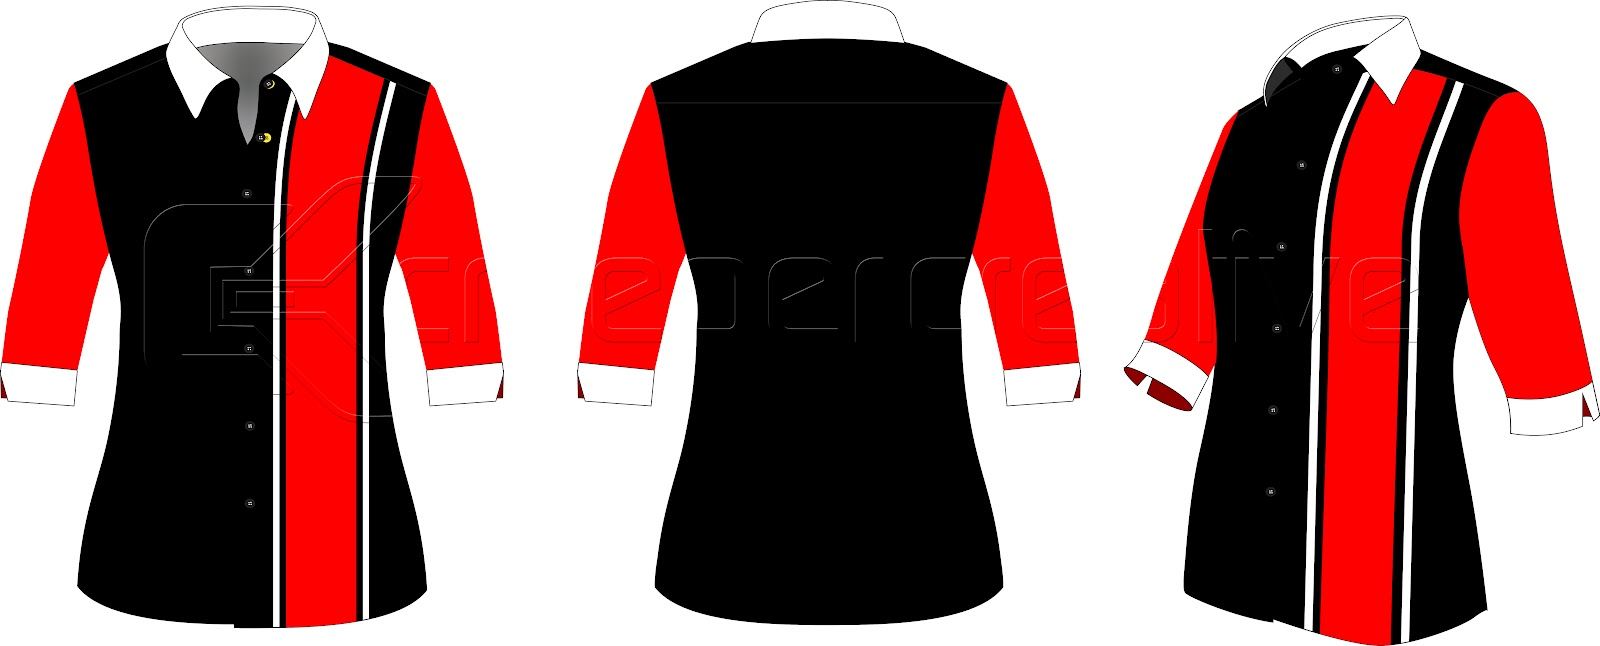 Download image Corporate Uniform Designs PC, Android, iPhone and iPad ...